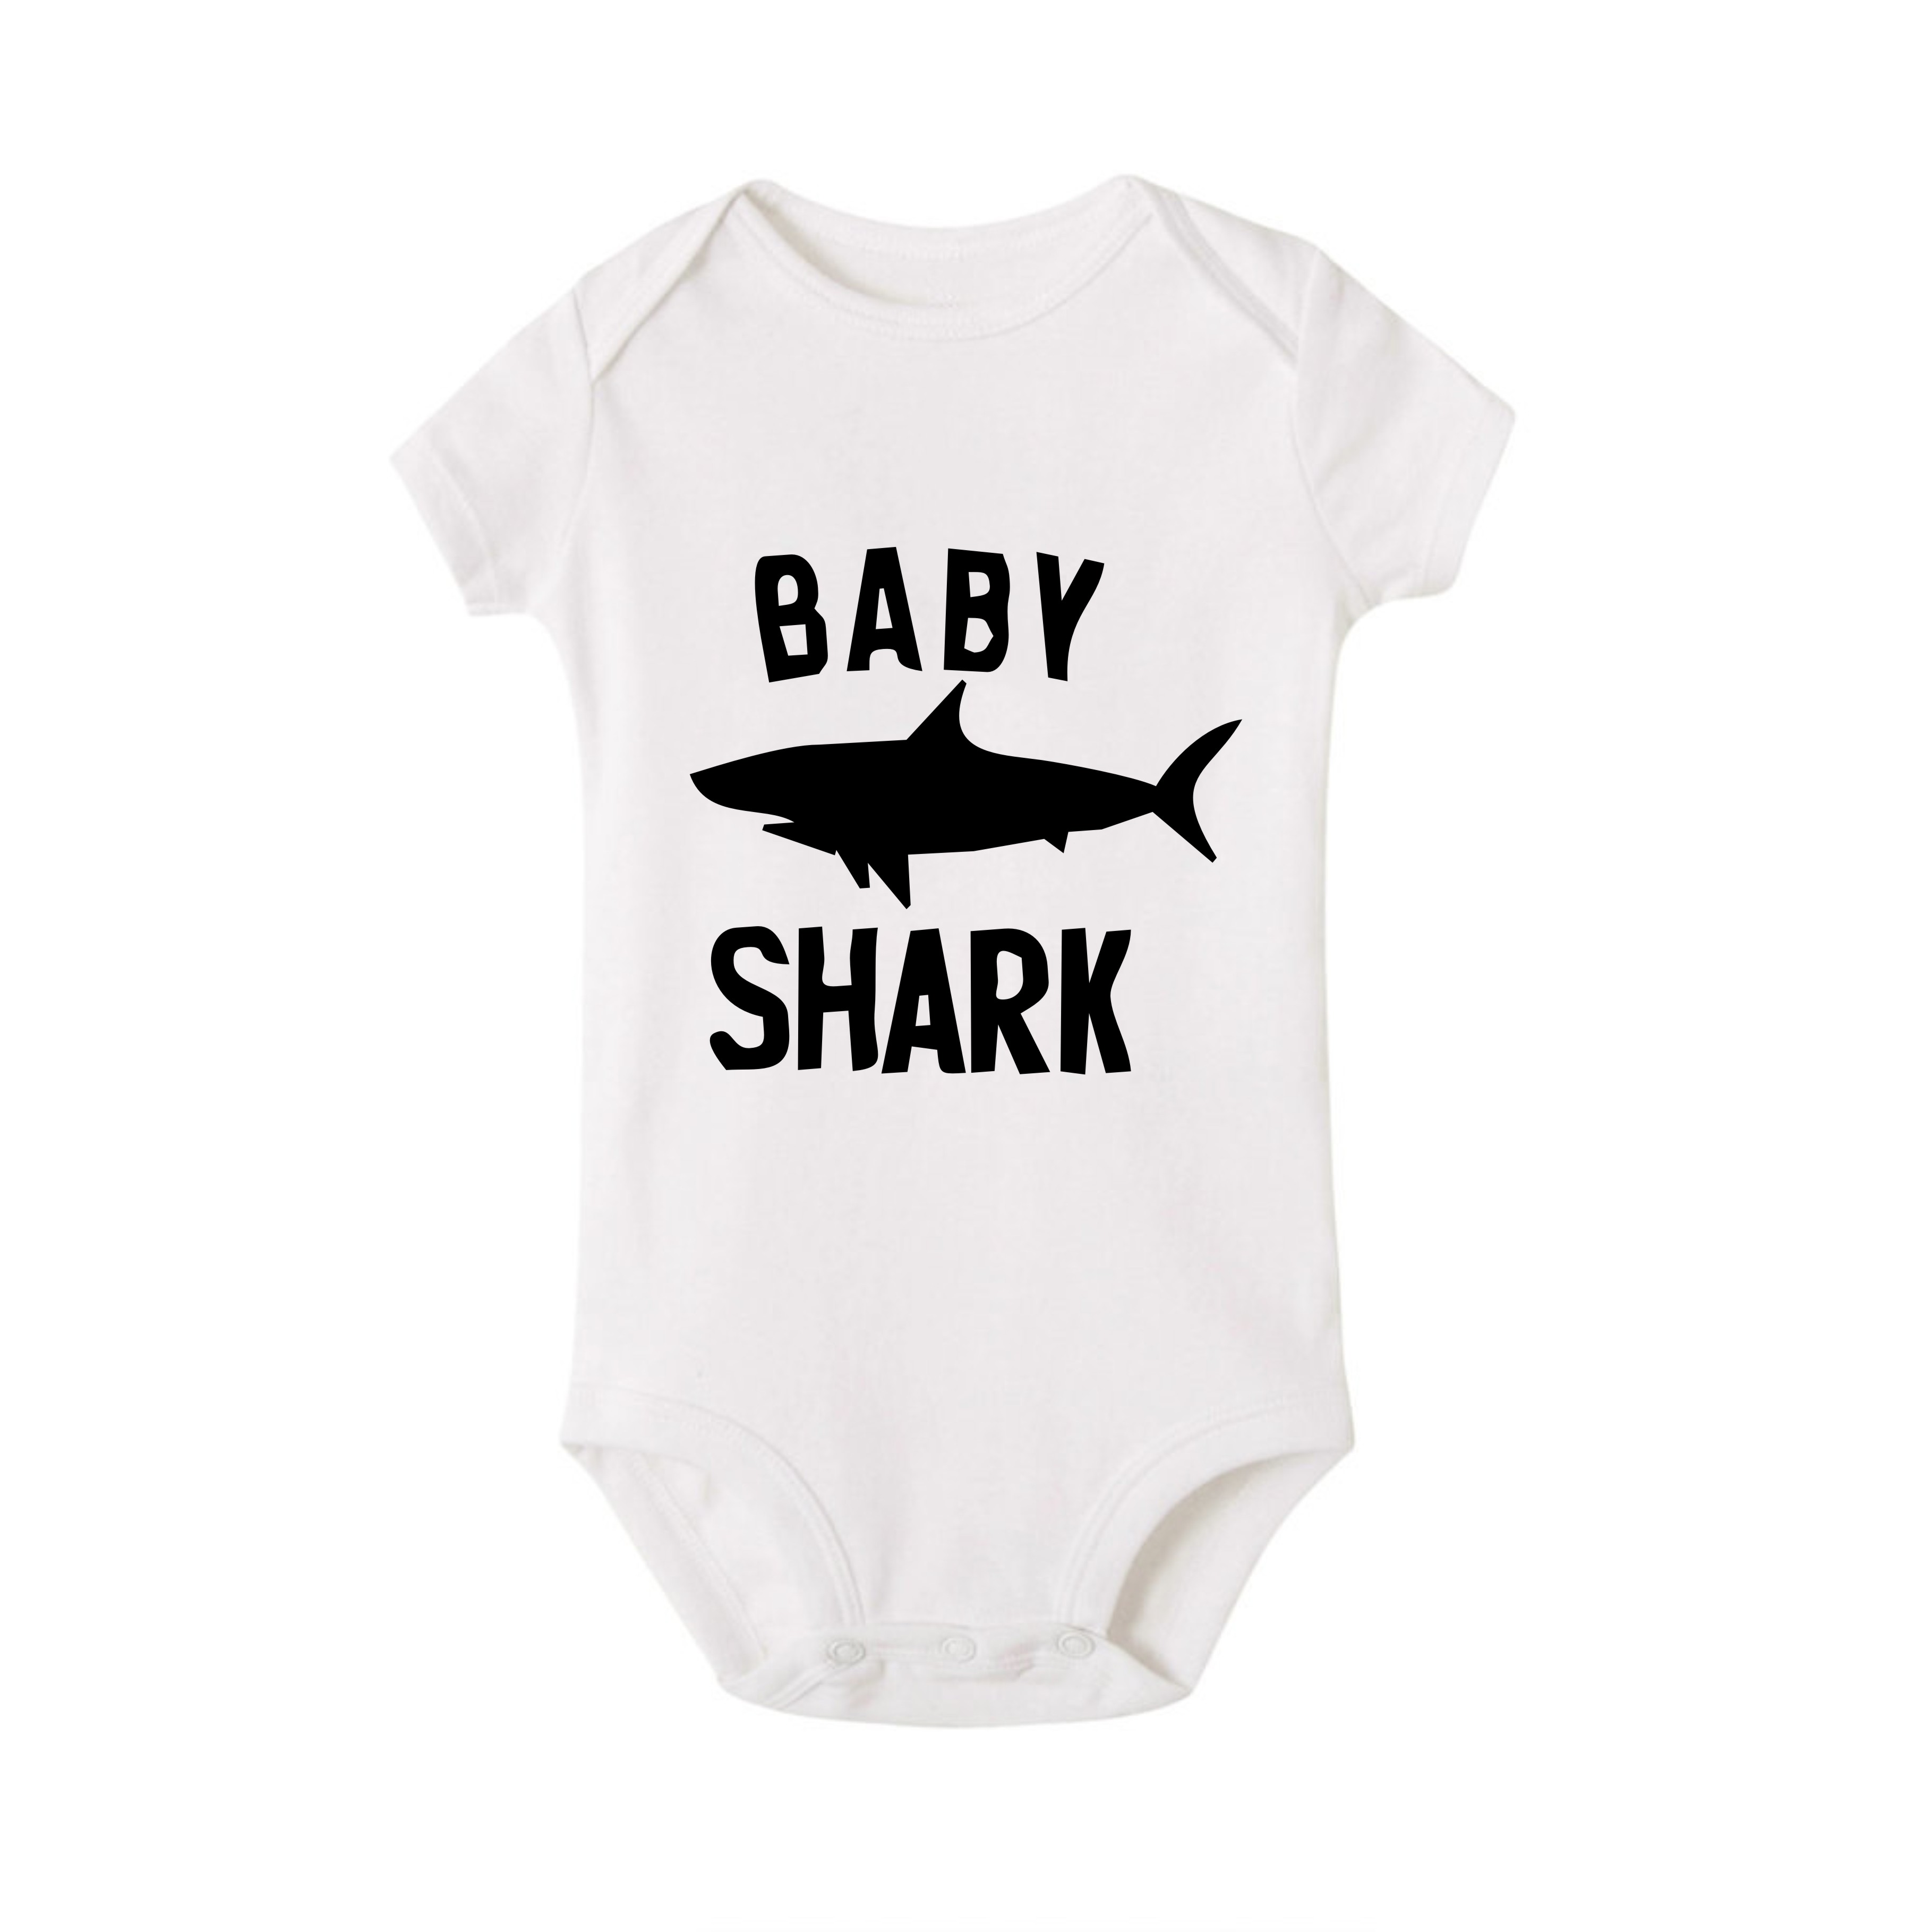 Summer Shark Family Matching Clothes T Shirt Mother Son Dad Girl T Shirts Kids Baby Girl Boys Romper T Shirt Outfits QT-1934 3